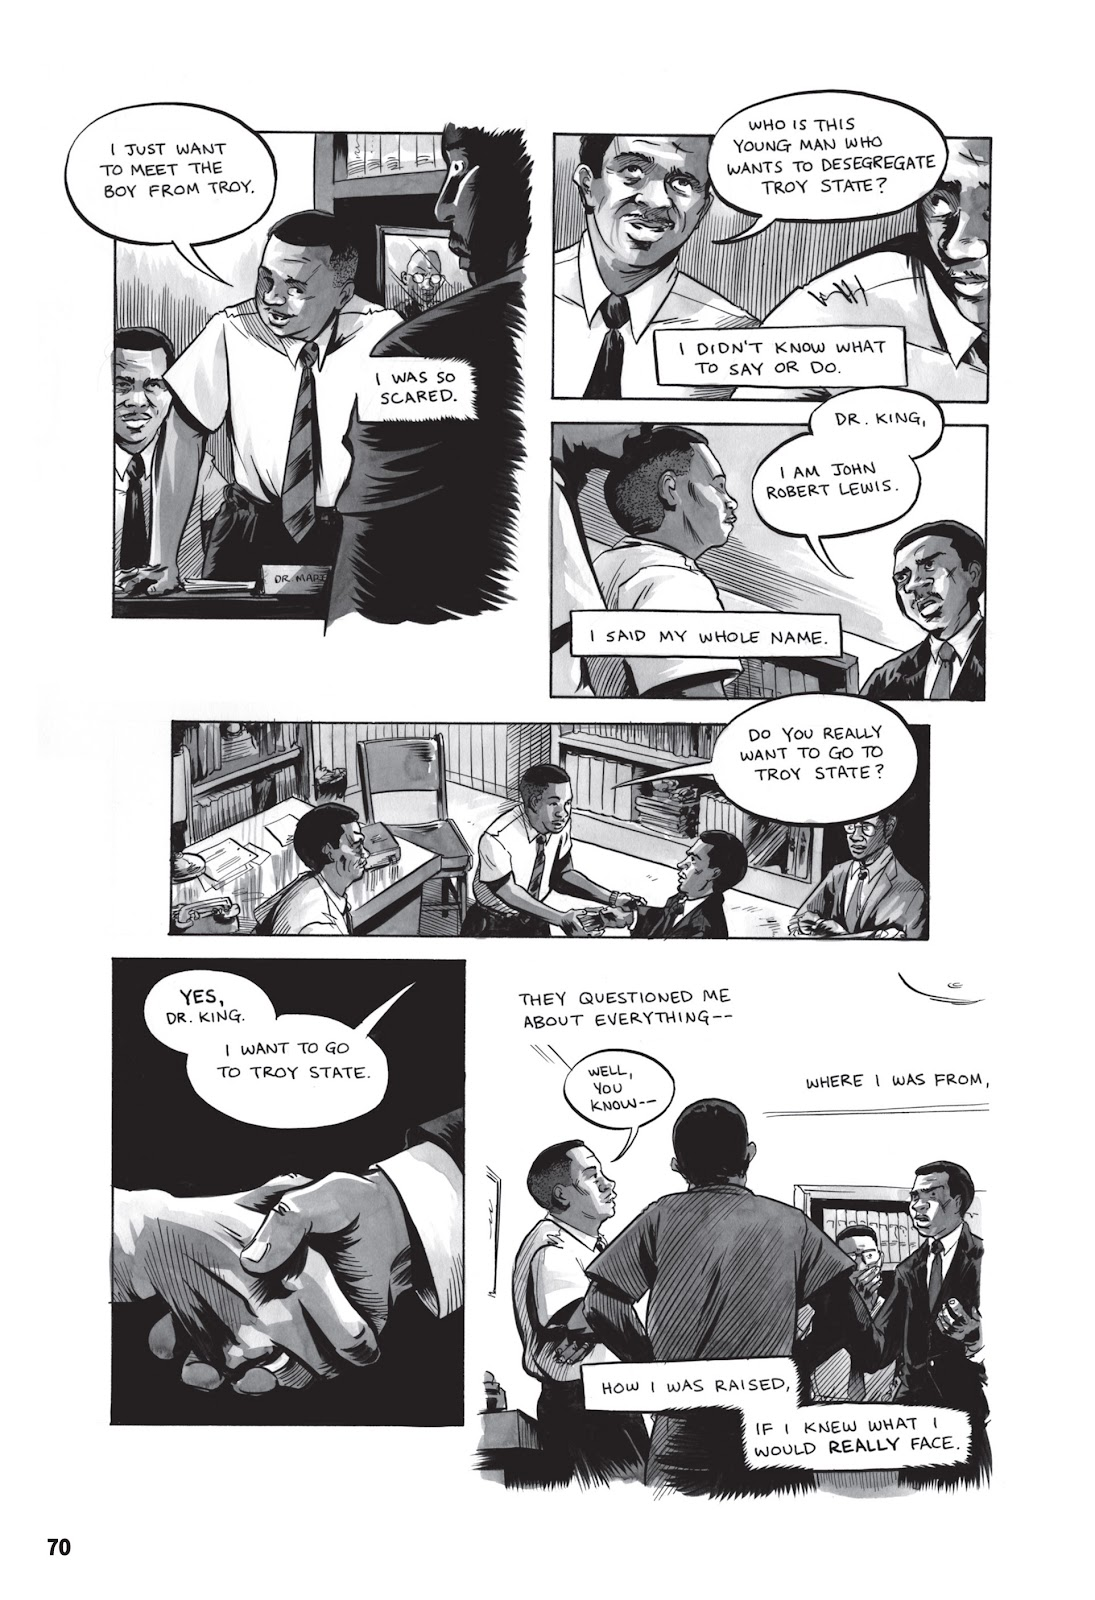 March 1 Page 67